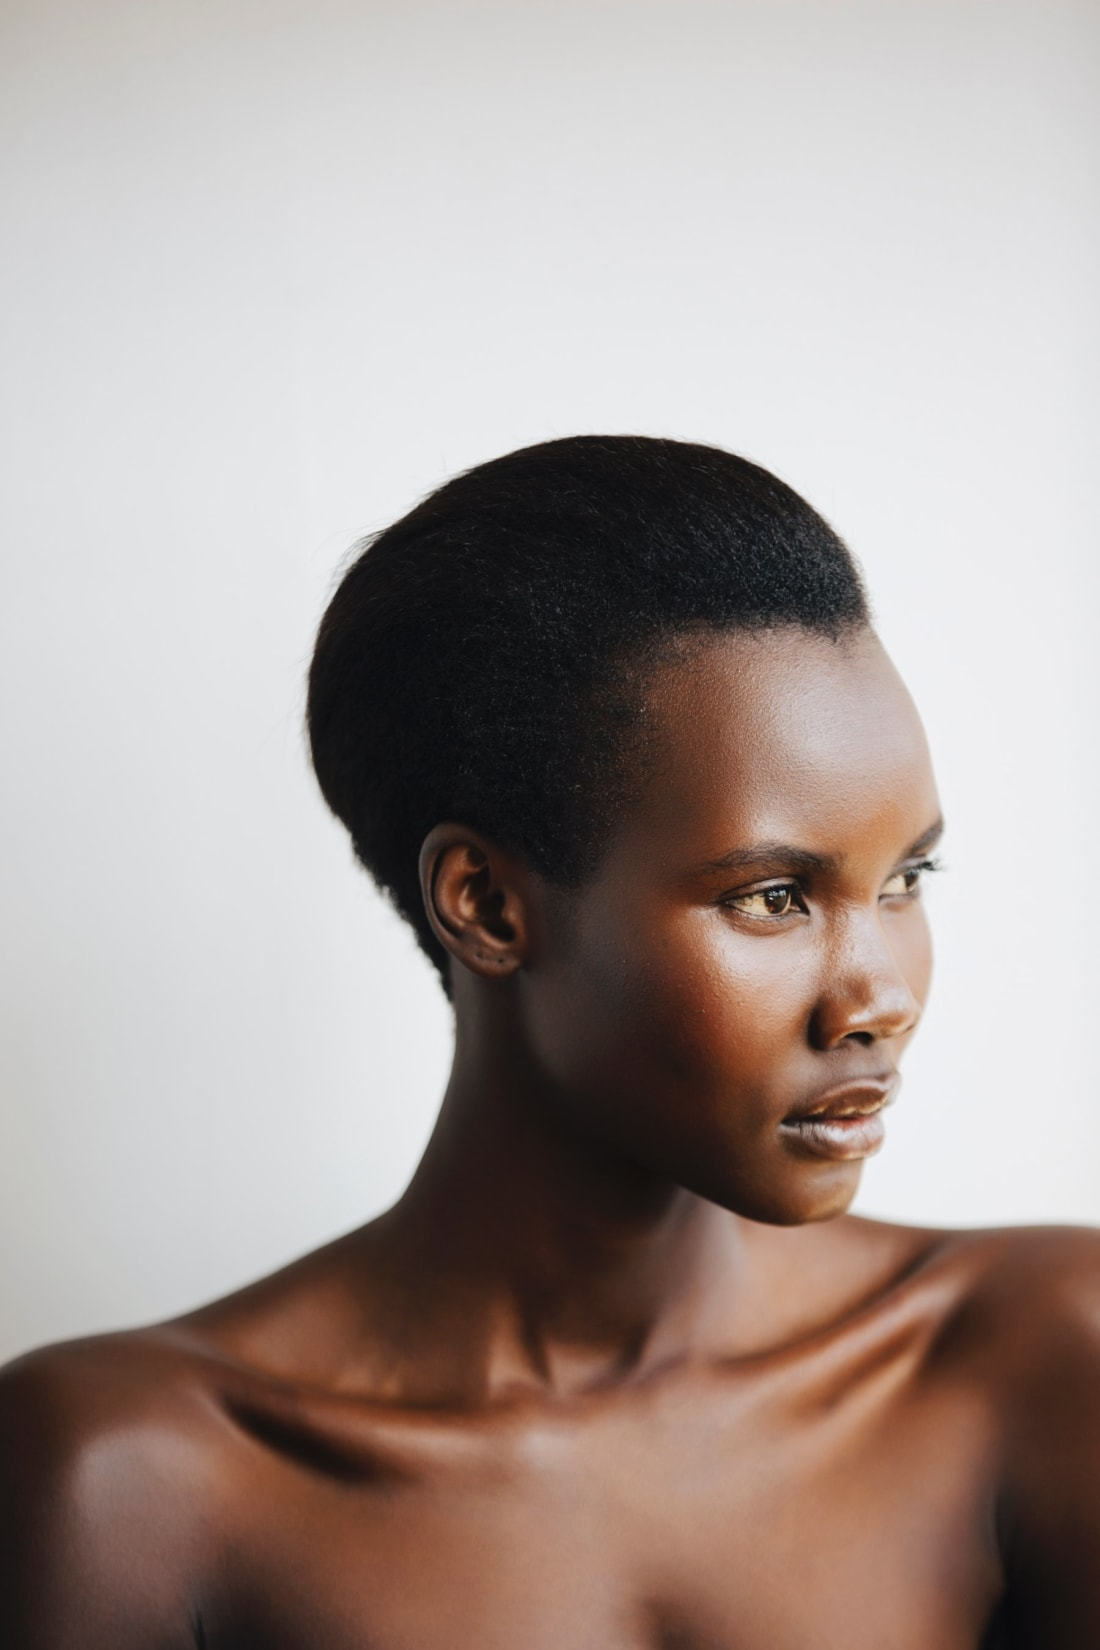 Meet the African models breaking barriers  - CNN Style